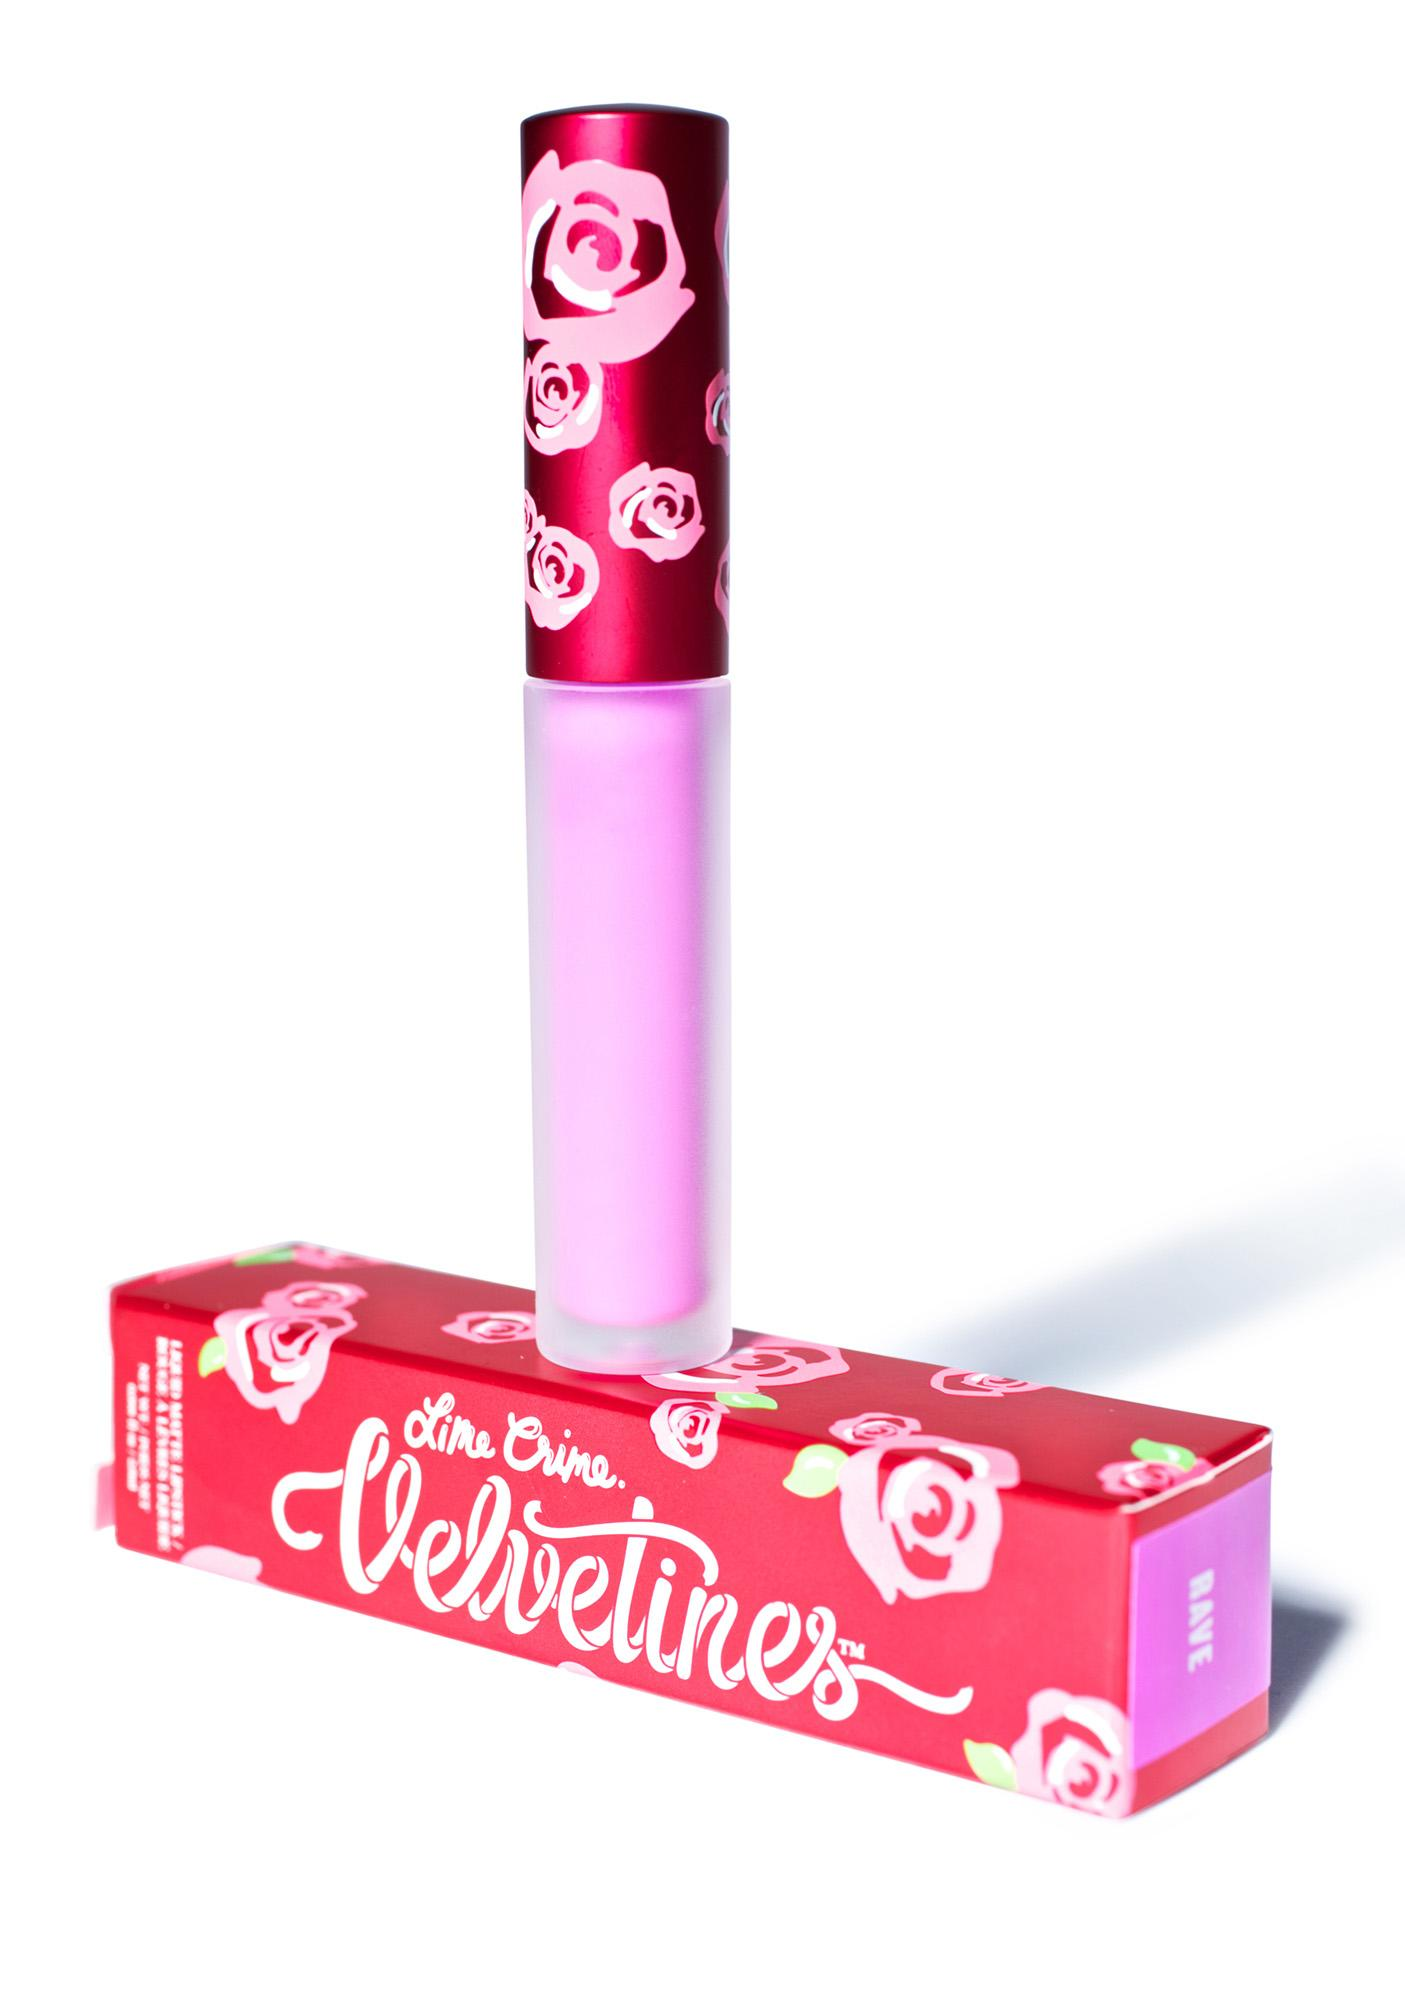 Lime Crime Cupid Velvetine Liquid Lipstick: Lime Crime Rave Velvetine Liquid Lipstick